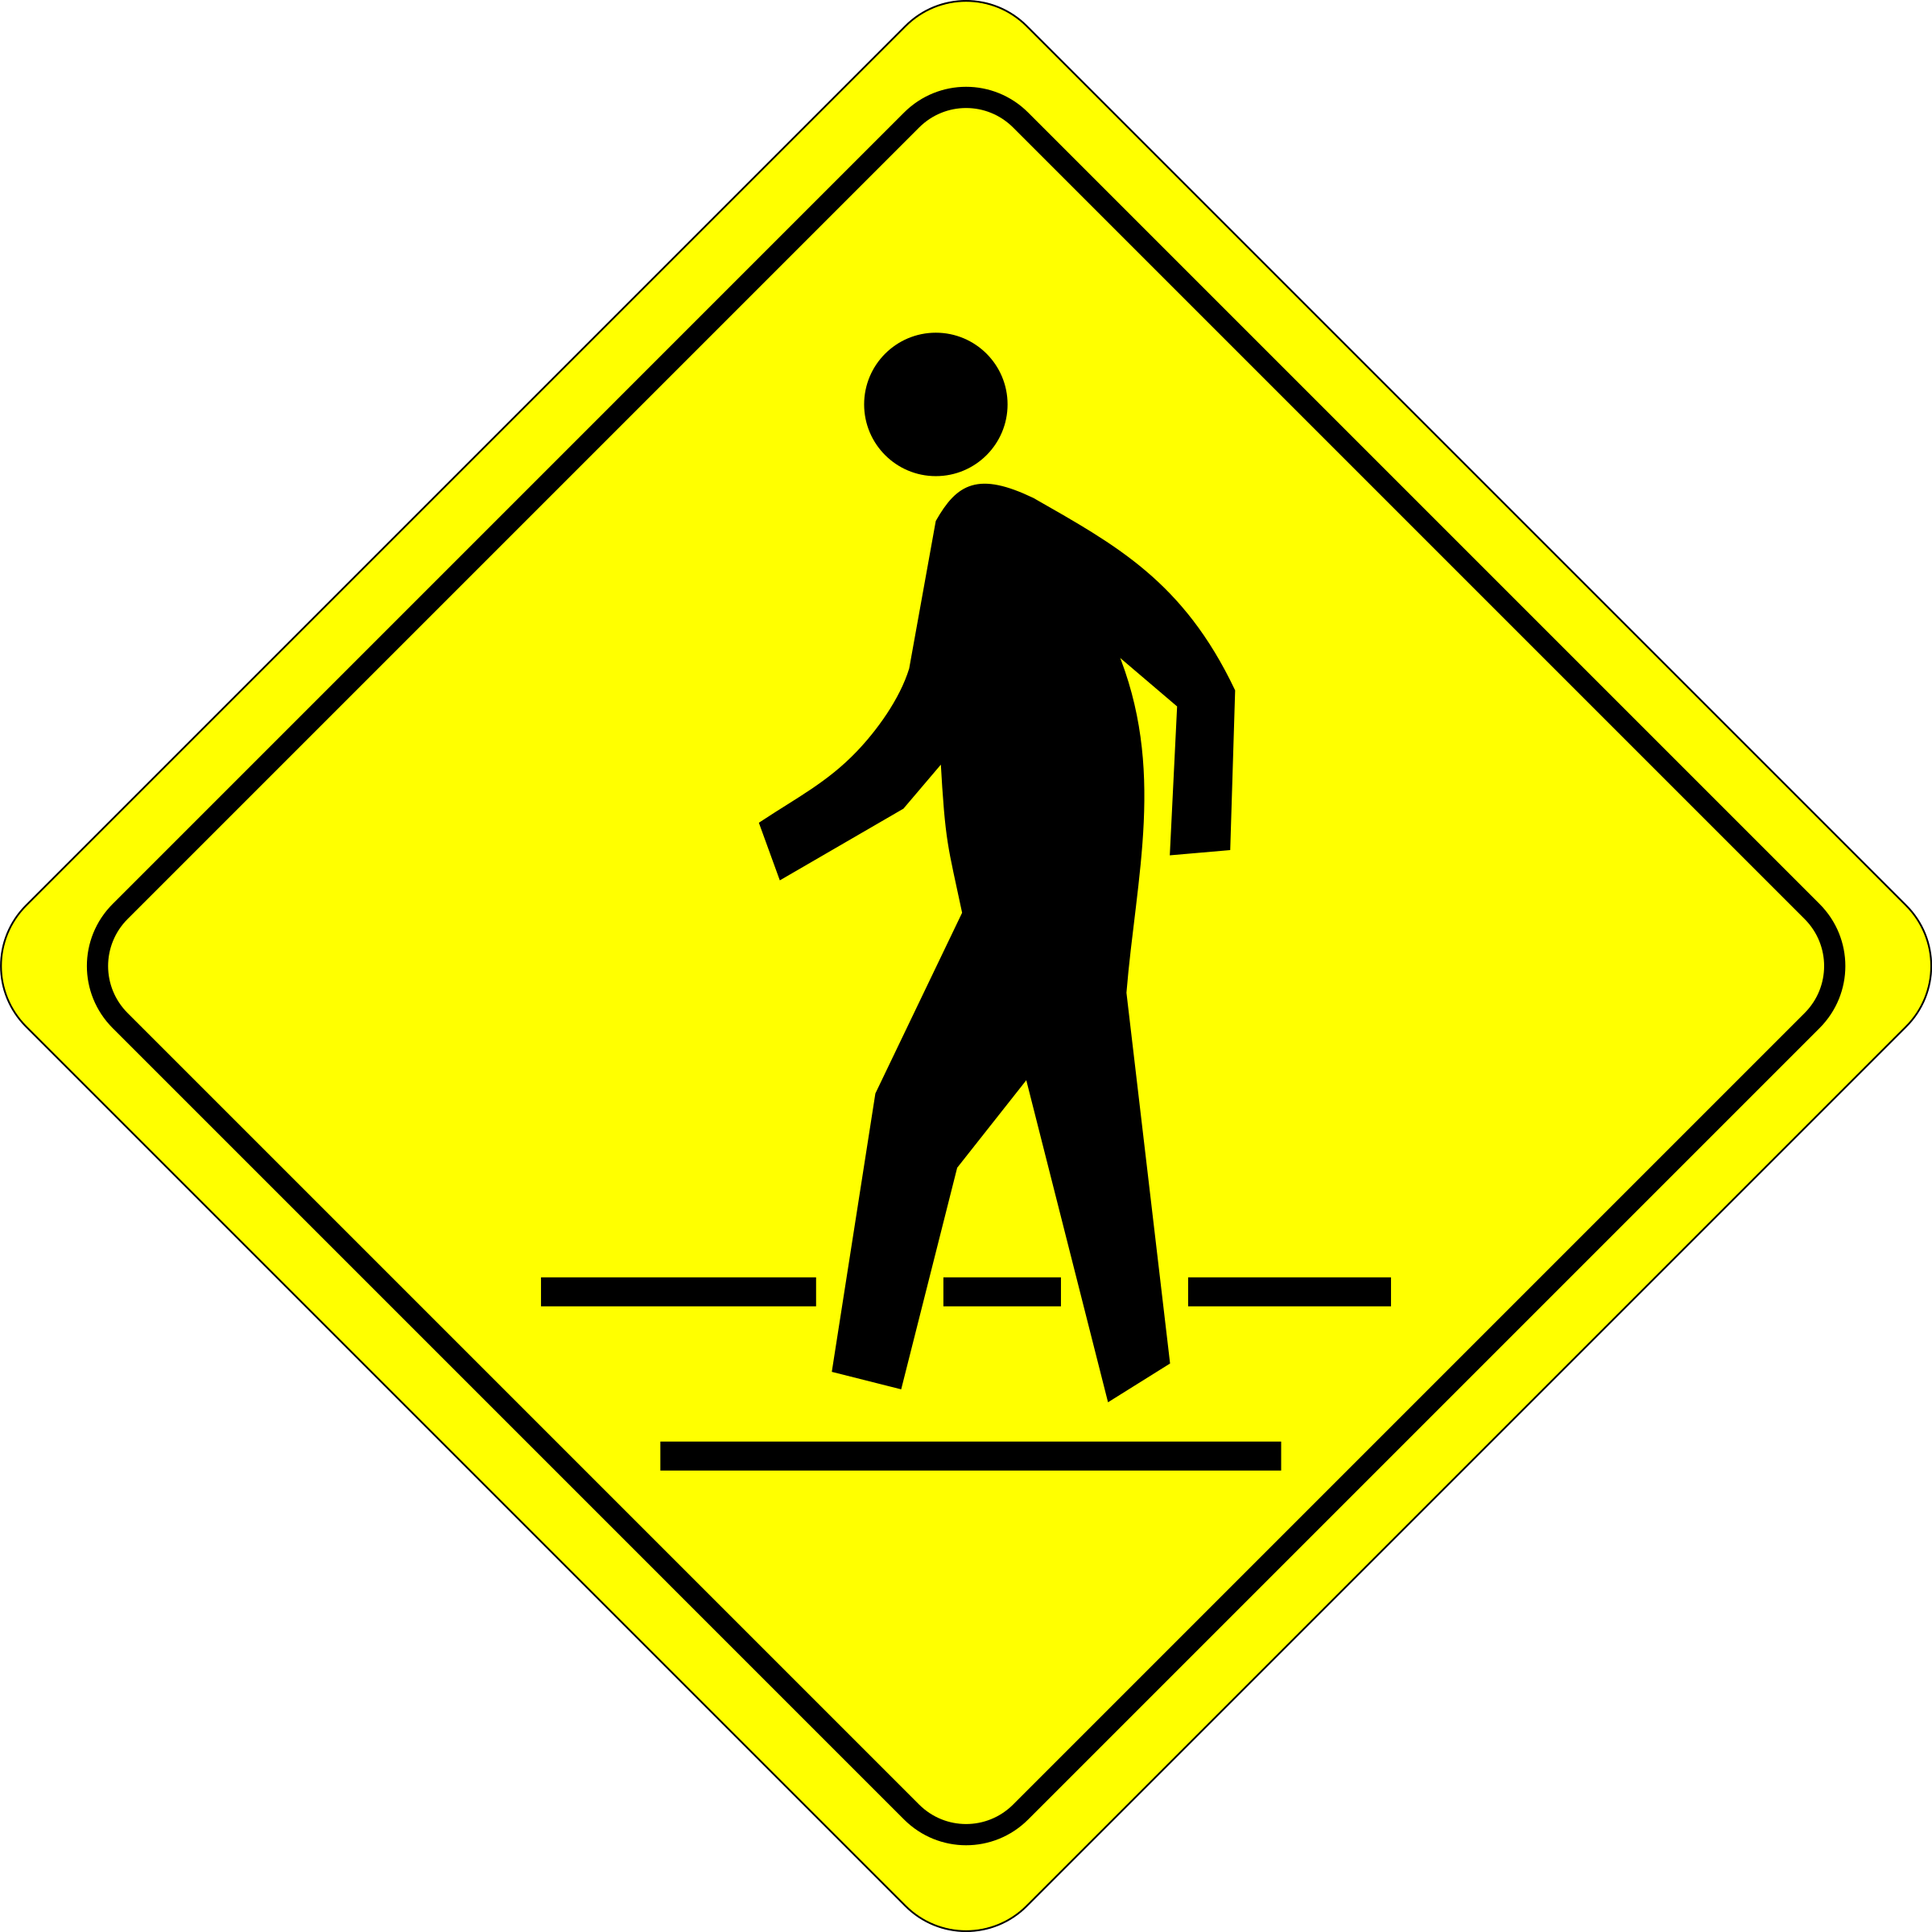 image free Walking on the sidewalk clipart. How to stay safe.